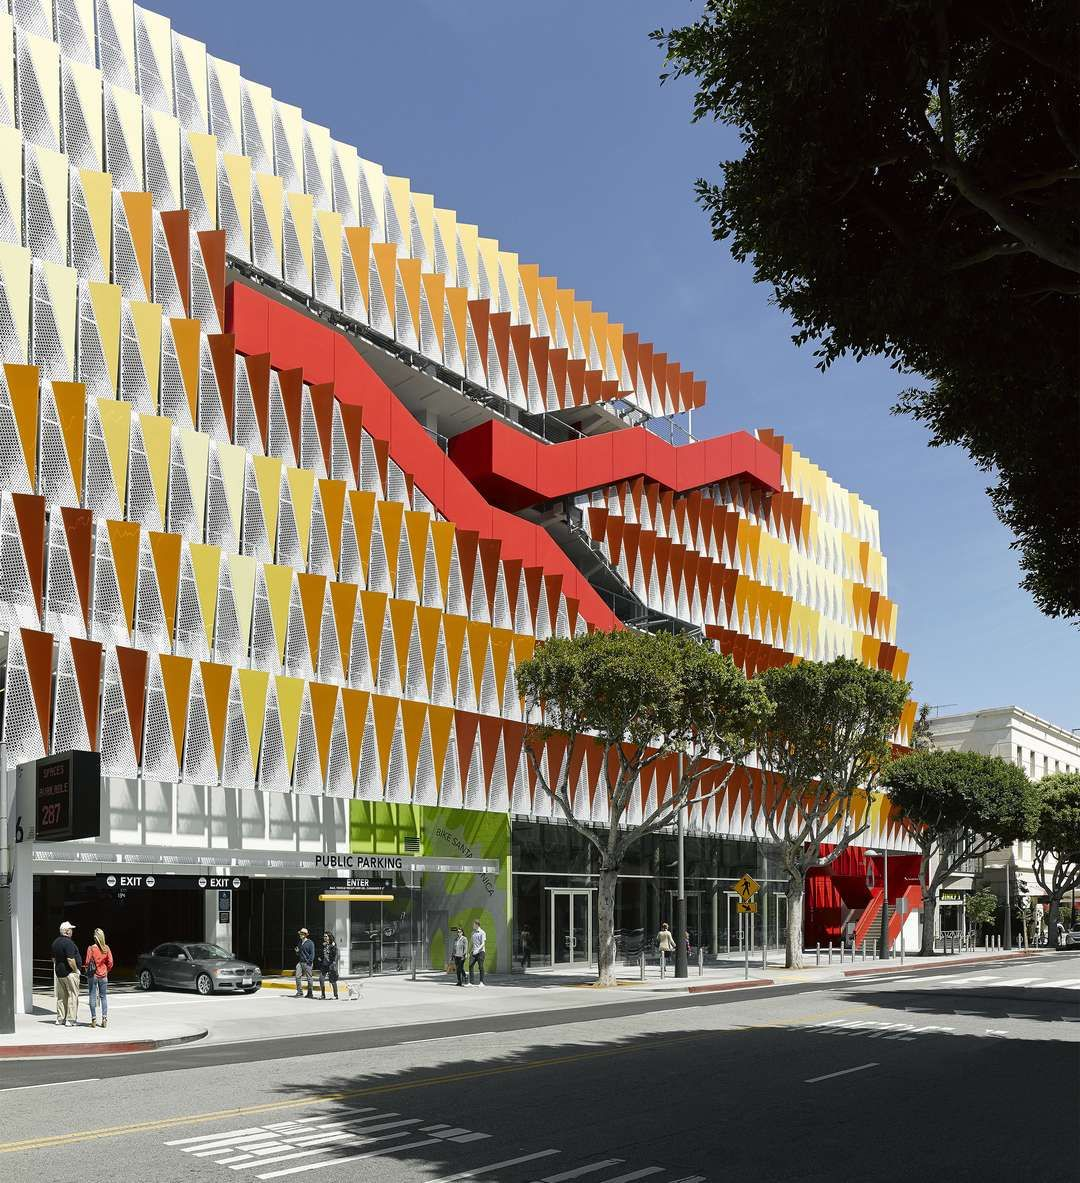 Garage Design Architecture: Santa Monica's Newest Parking Garage Is A Polychromatic